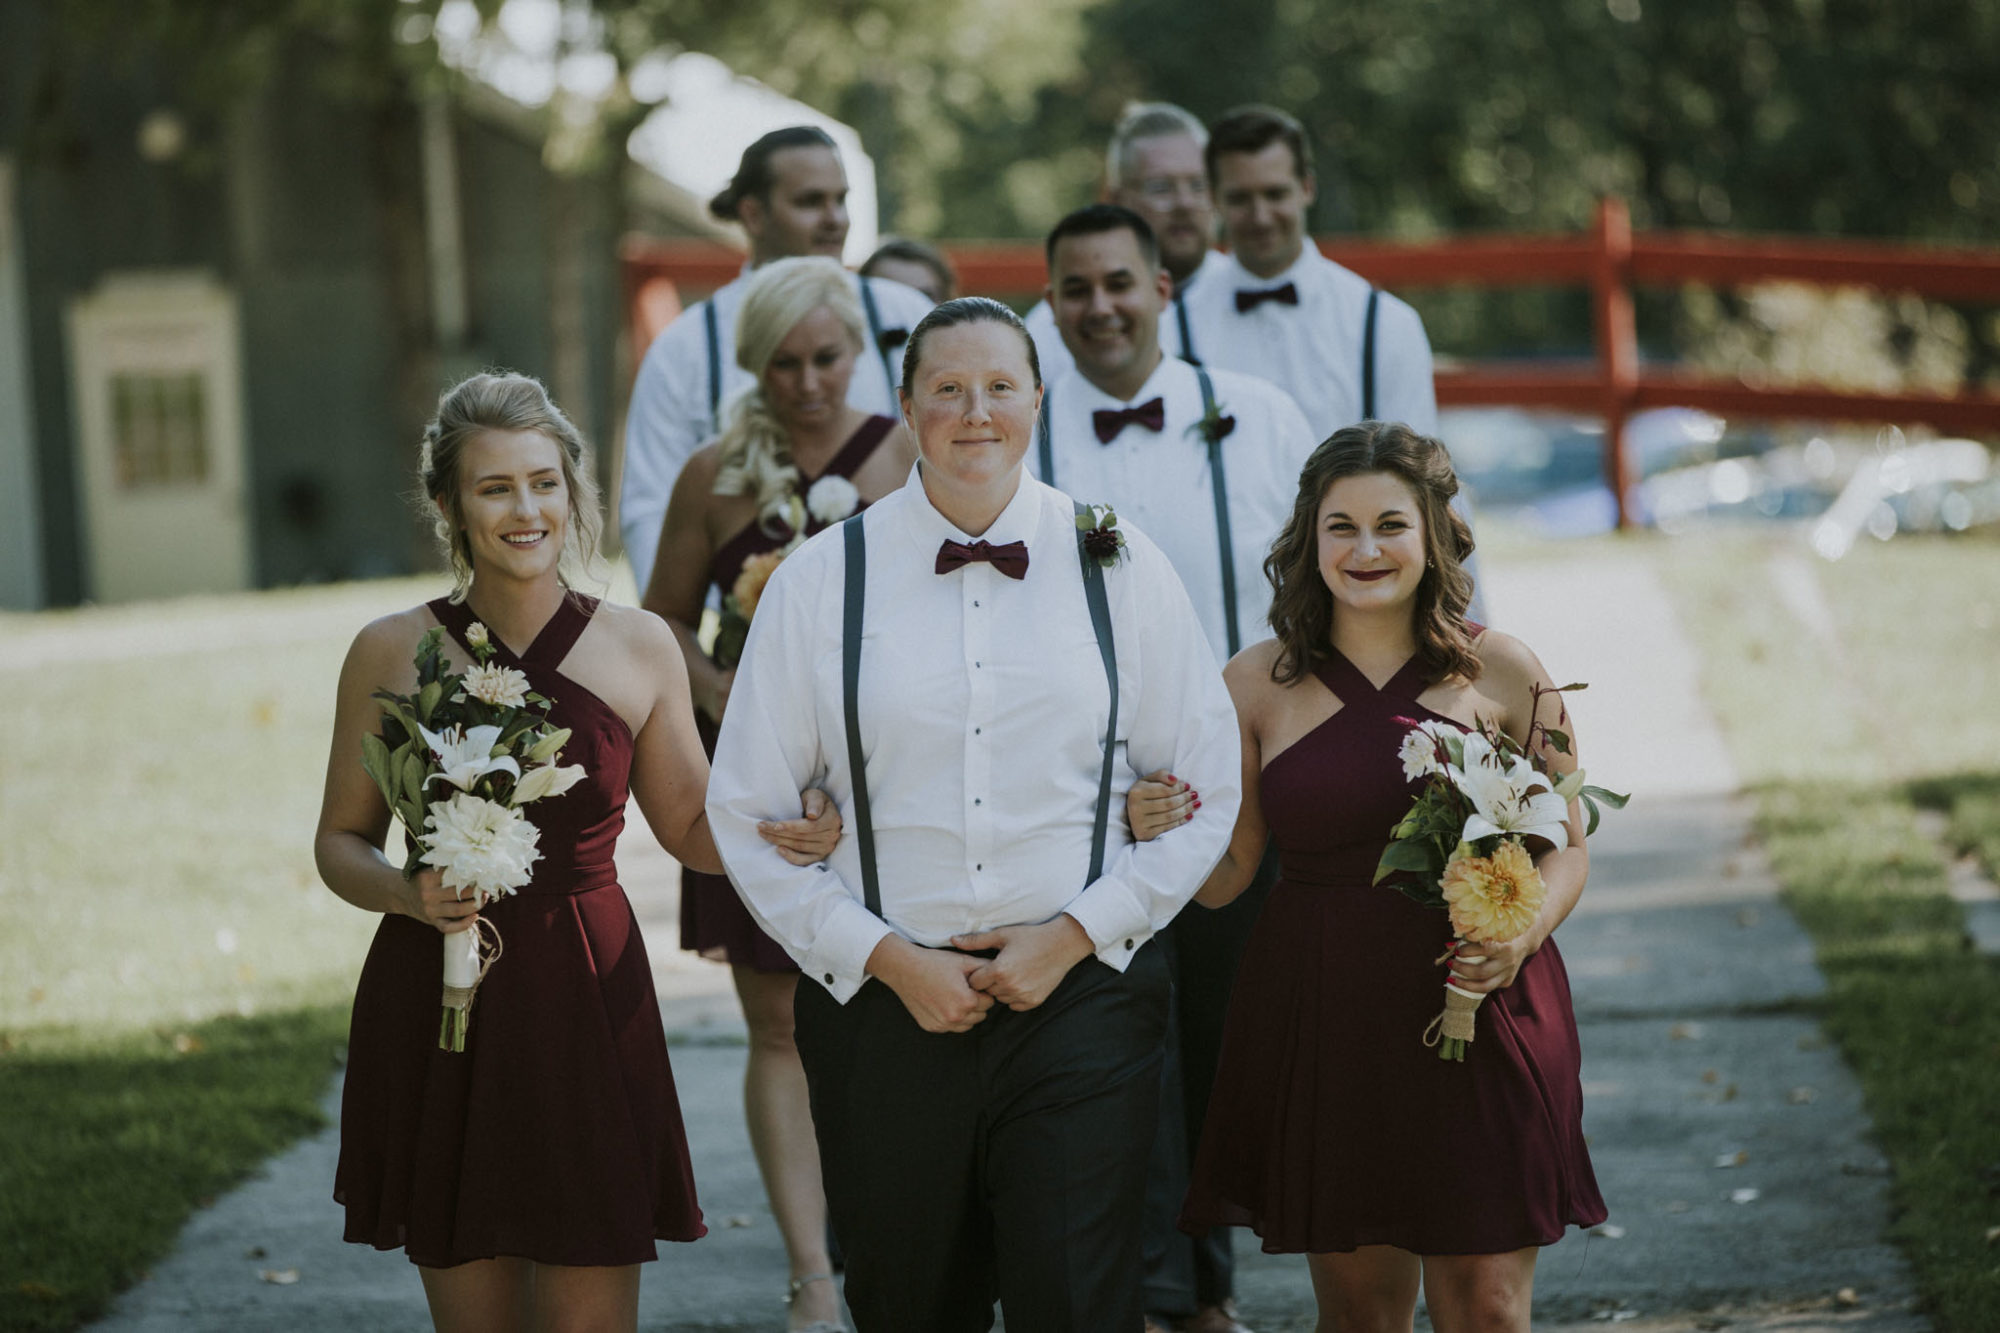 Bridal party at Starry Night Barn Wedding ceremony